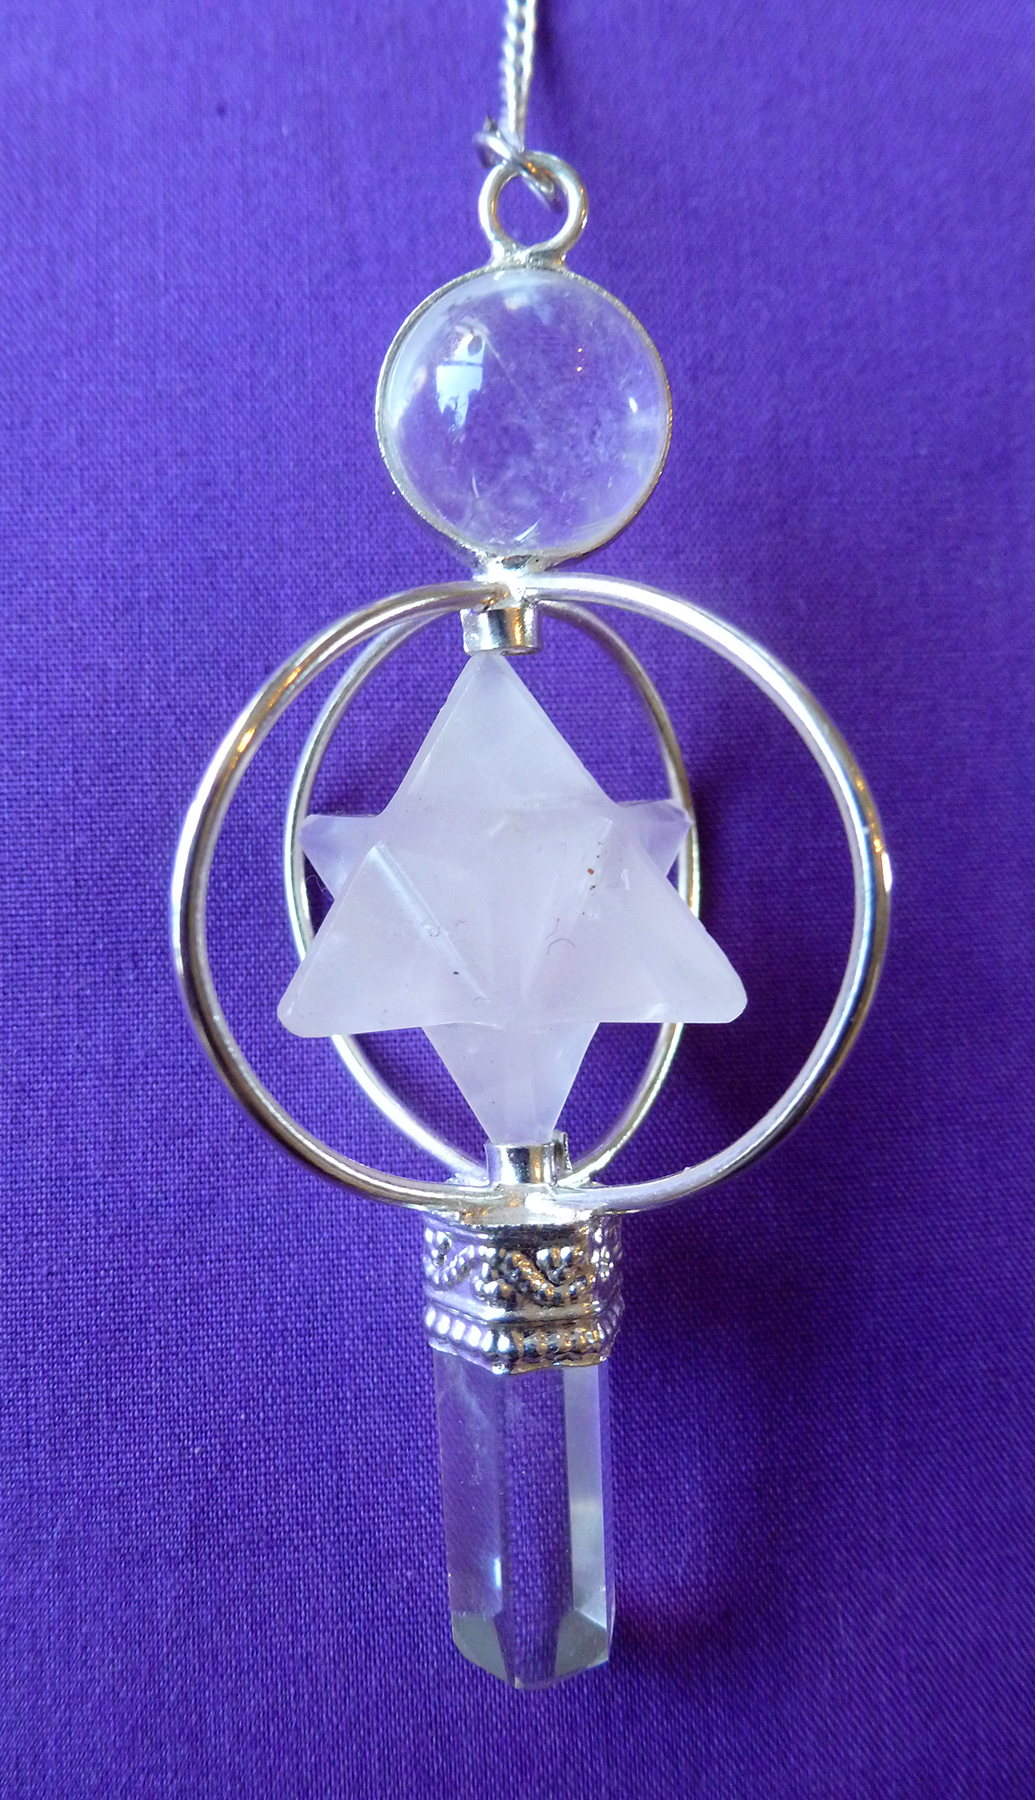 White and clear quartz merkaba pendulum